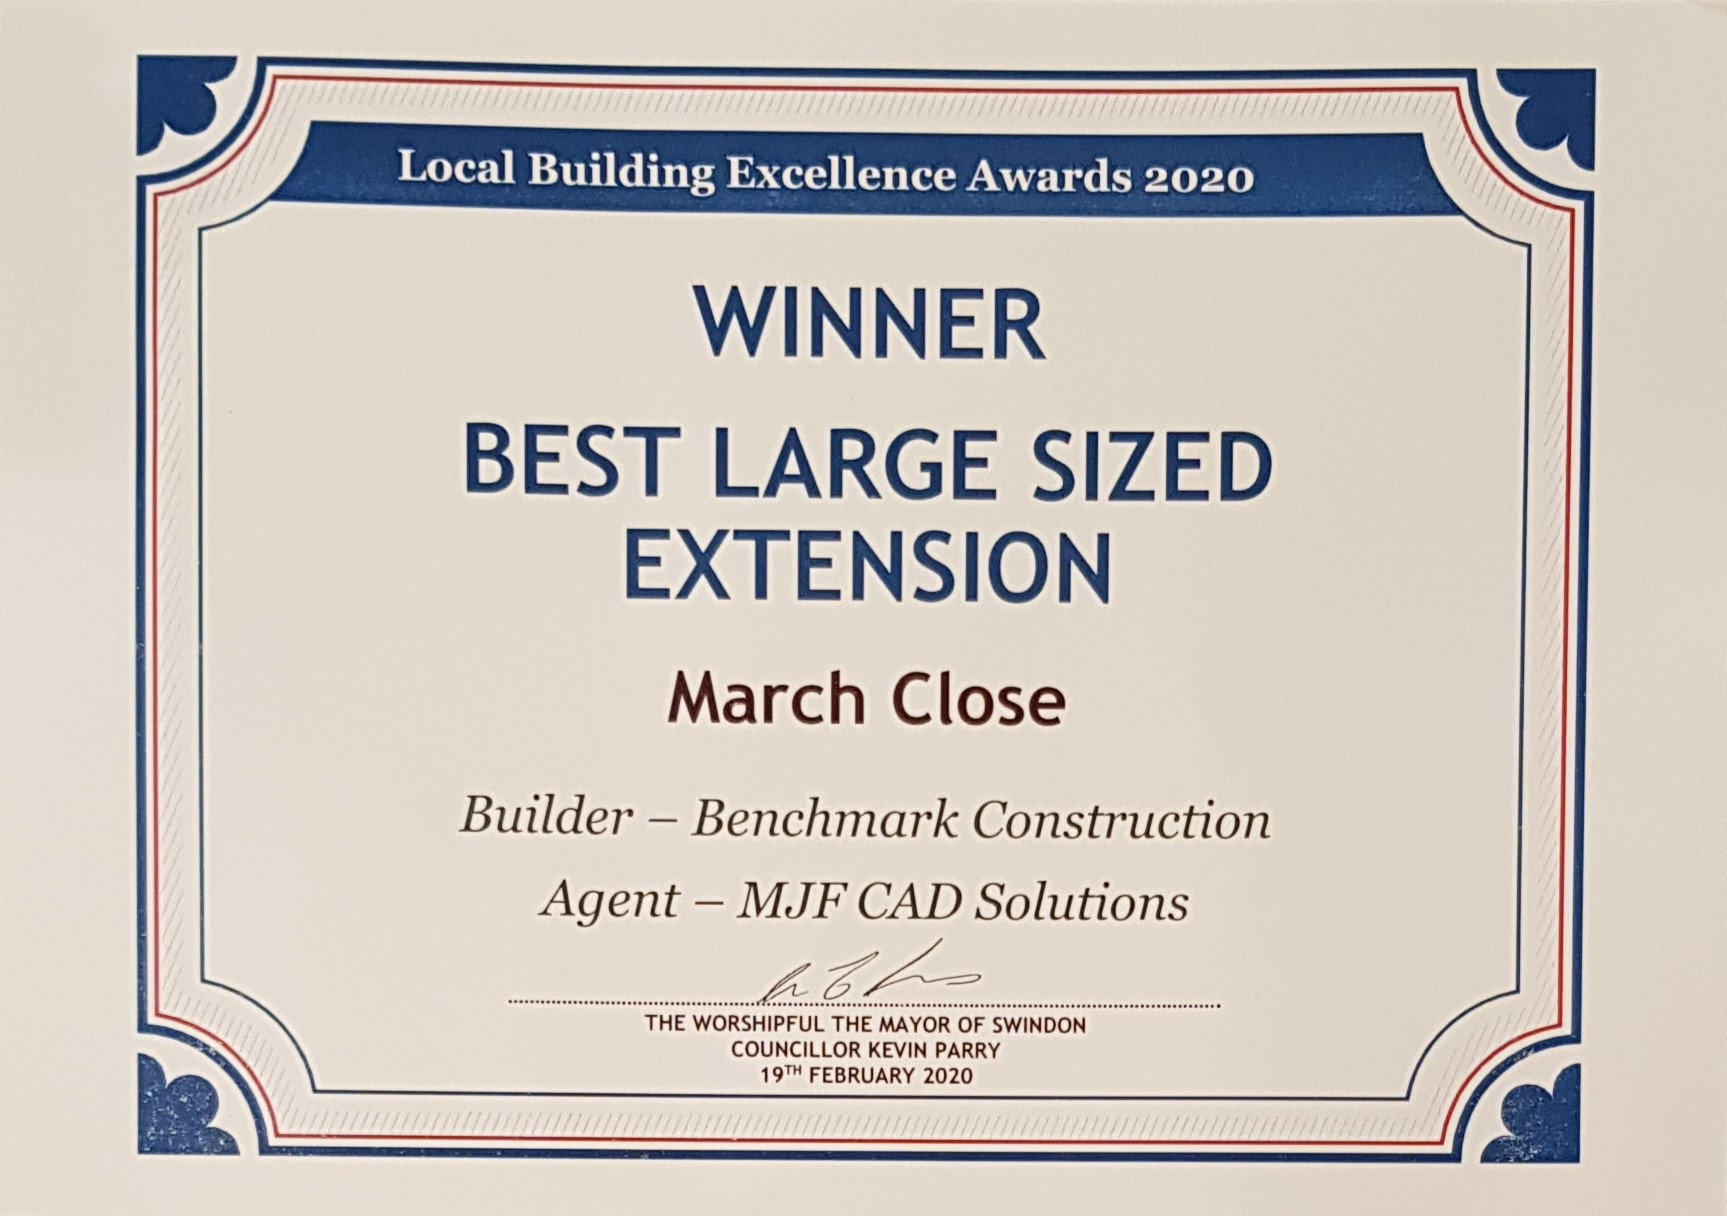 Winner of best large sized extension 2020